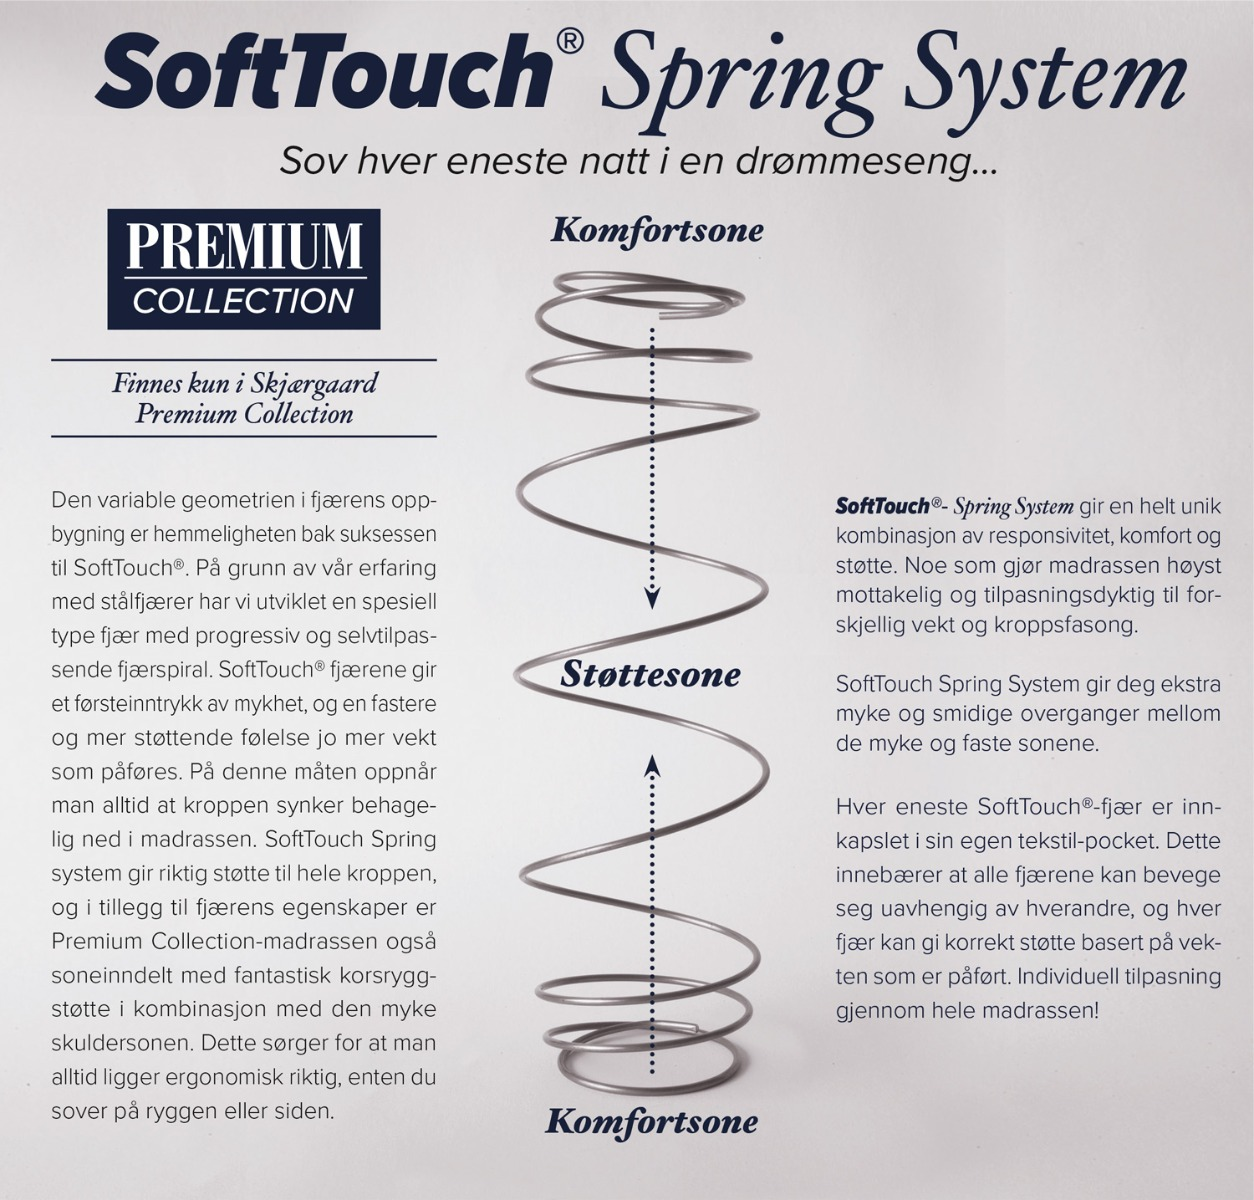 SoftTouch Spring system